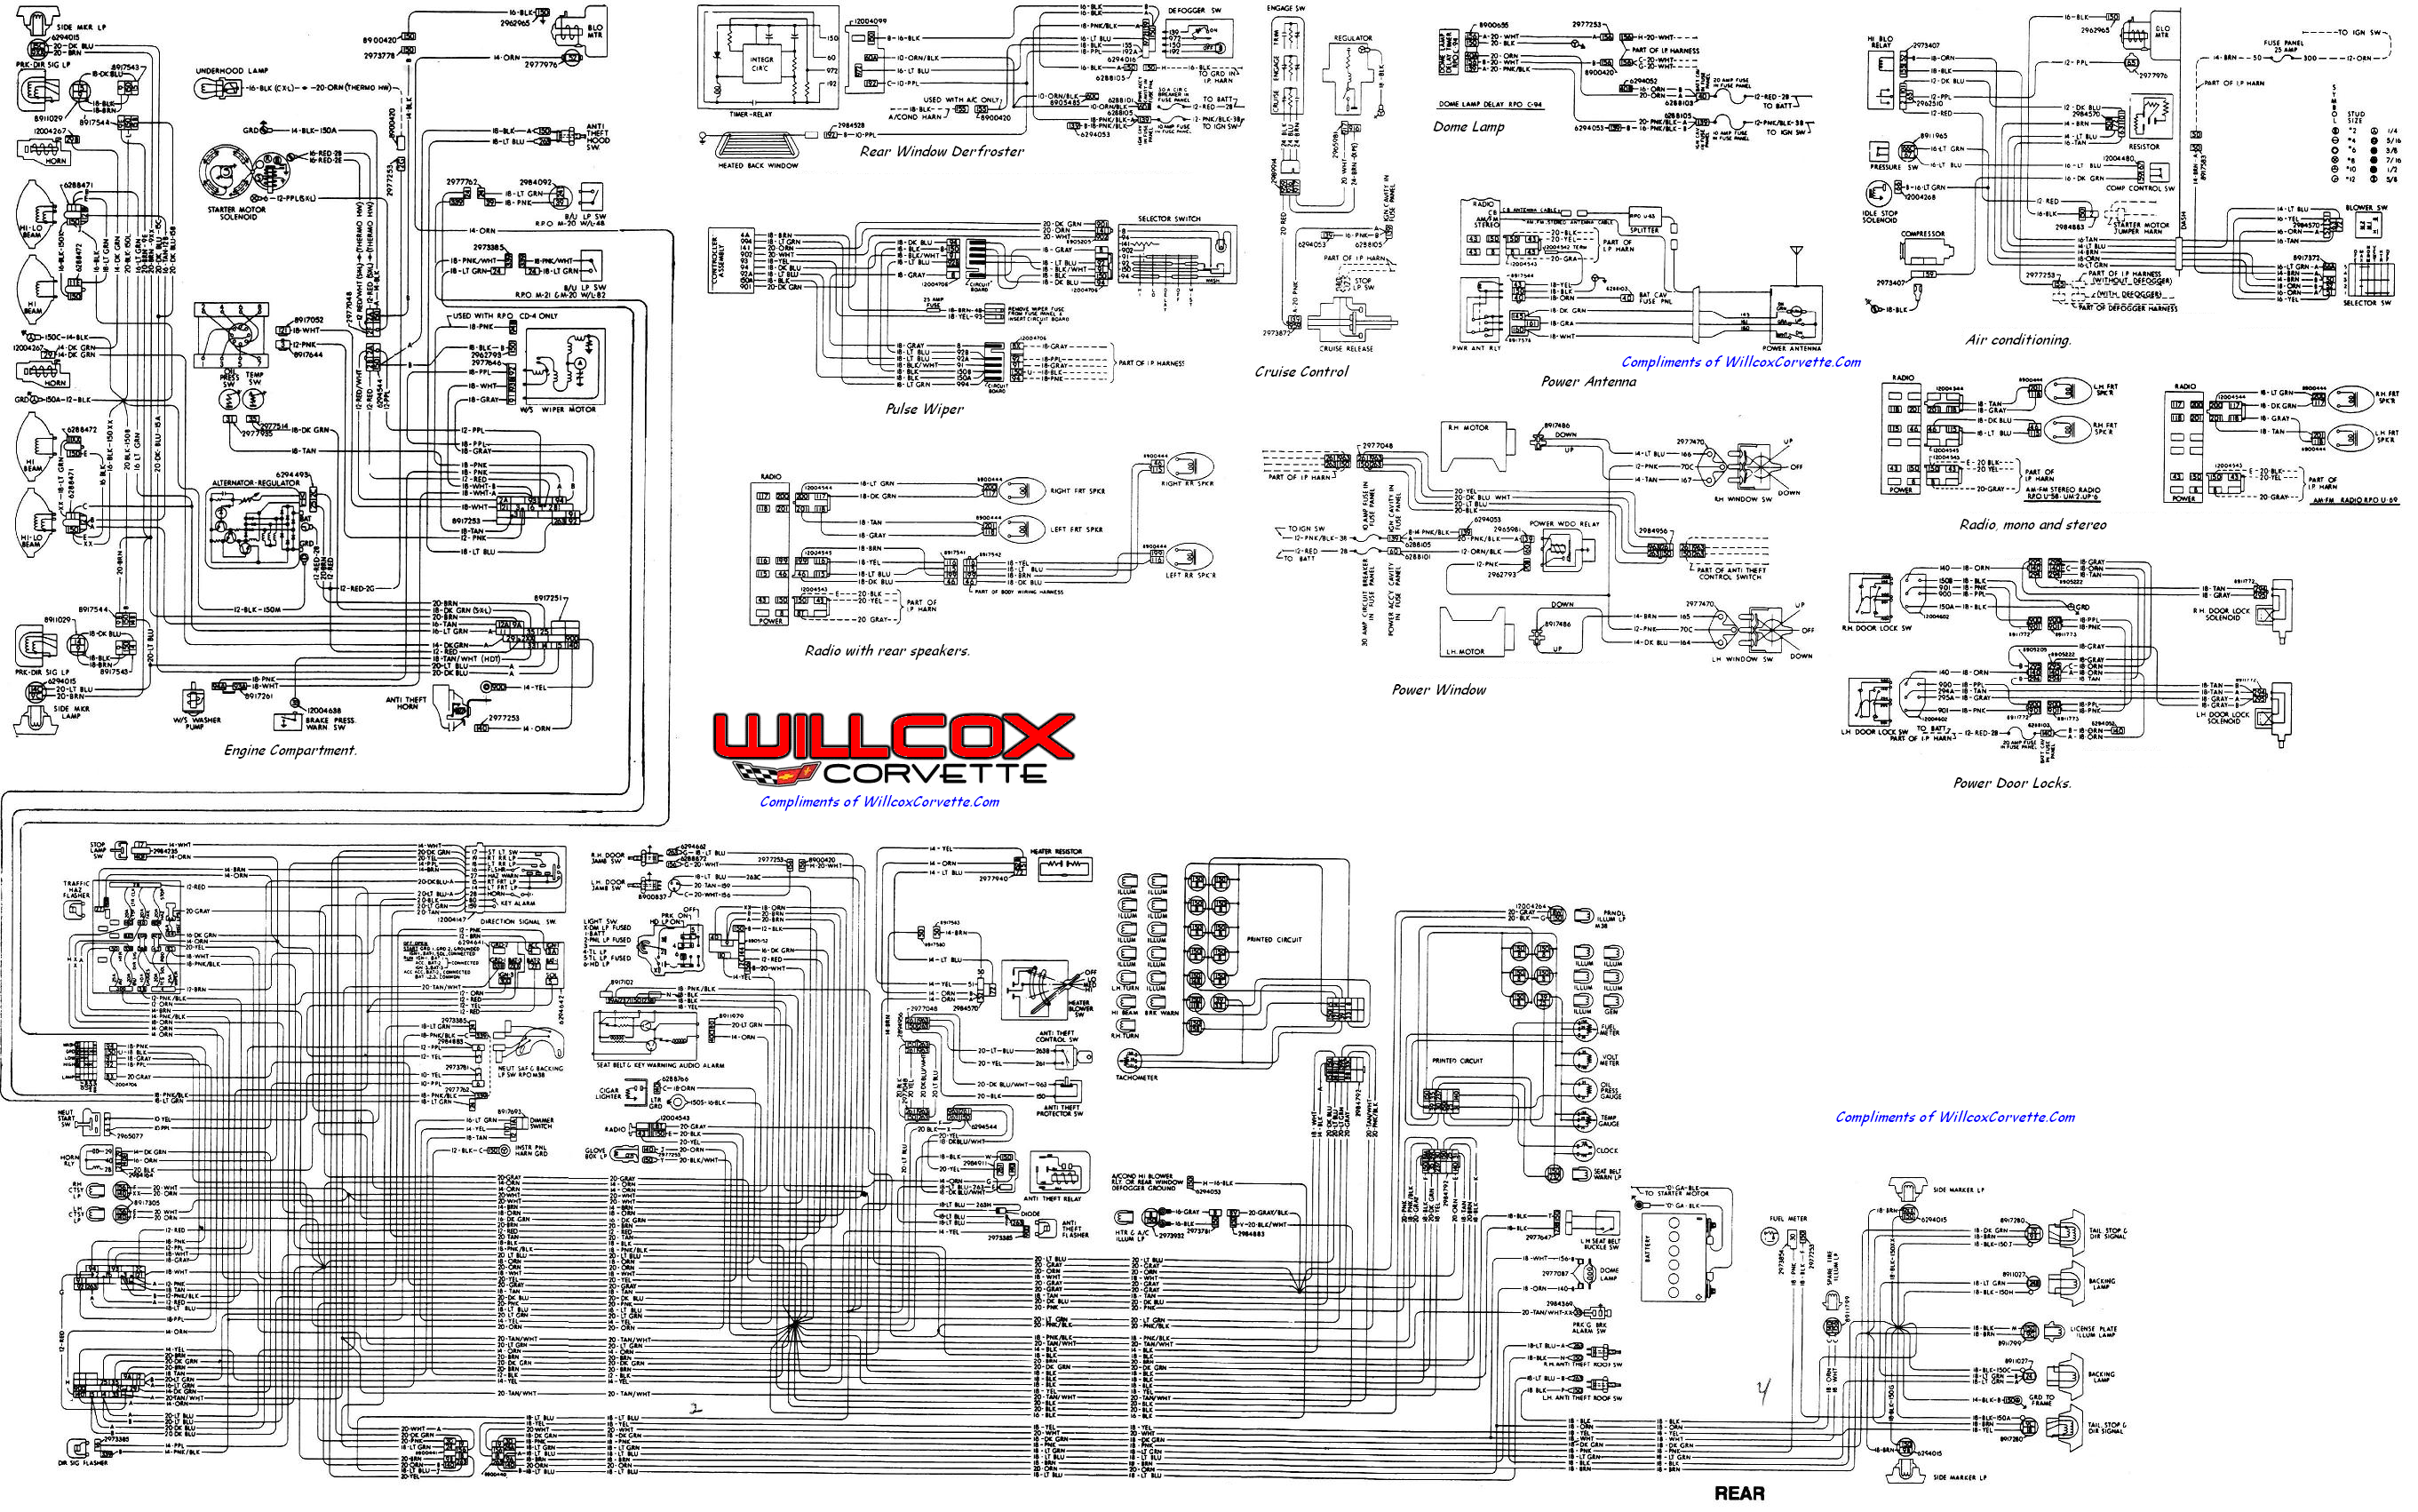 78 tracer schematic use this one 1980 c3 corvette fuse box wiring diagram data